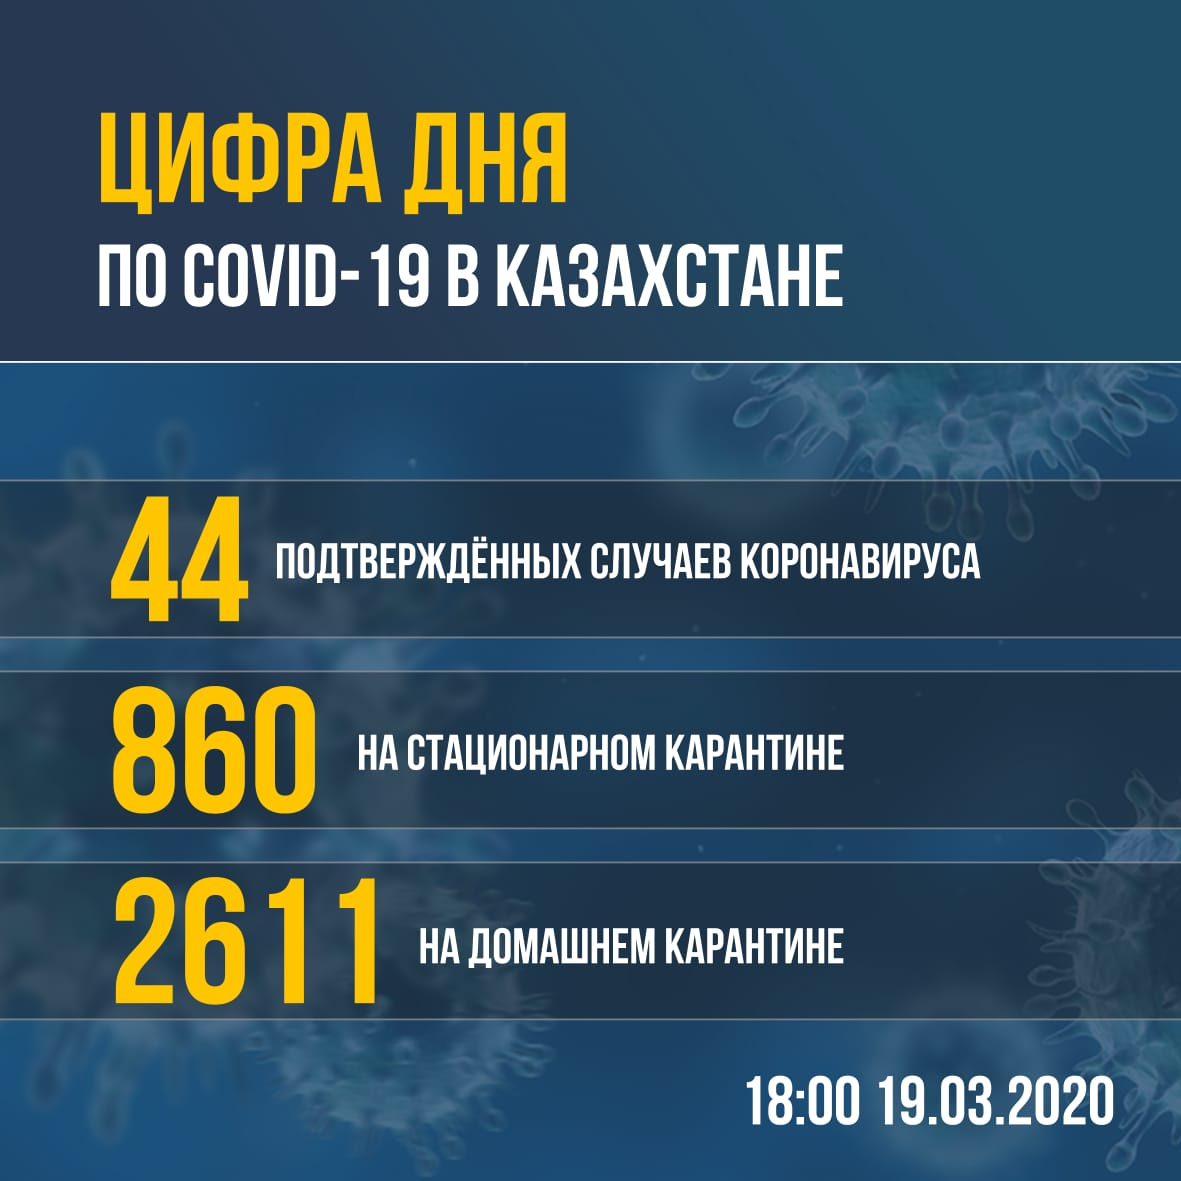 About the epidemiological situation related to coronavirus at 6.00PM on March 19, 2020 in Kazakhstan